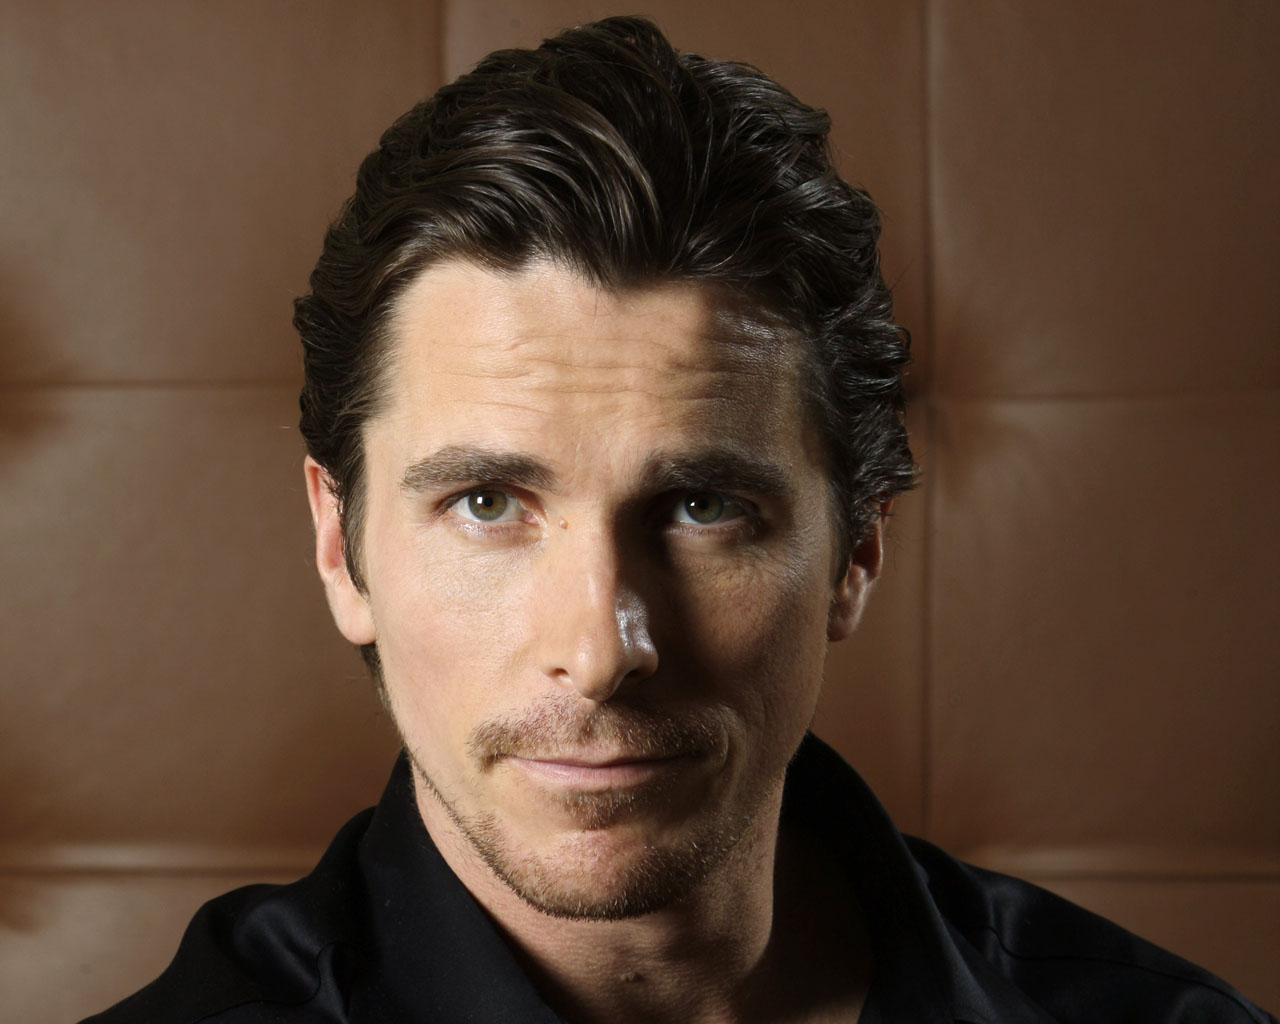 roles overview Christian Bale movies